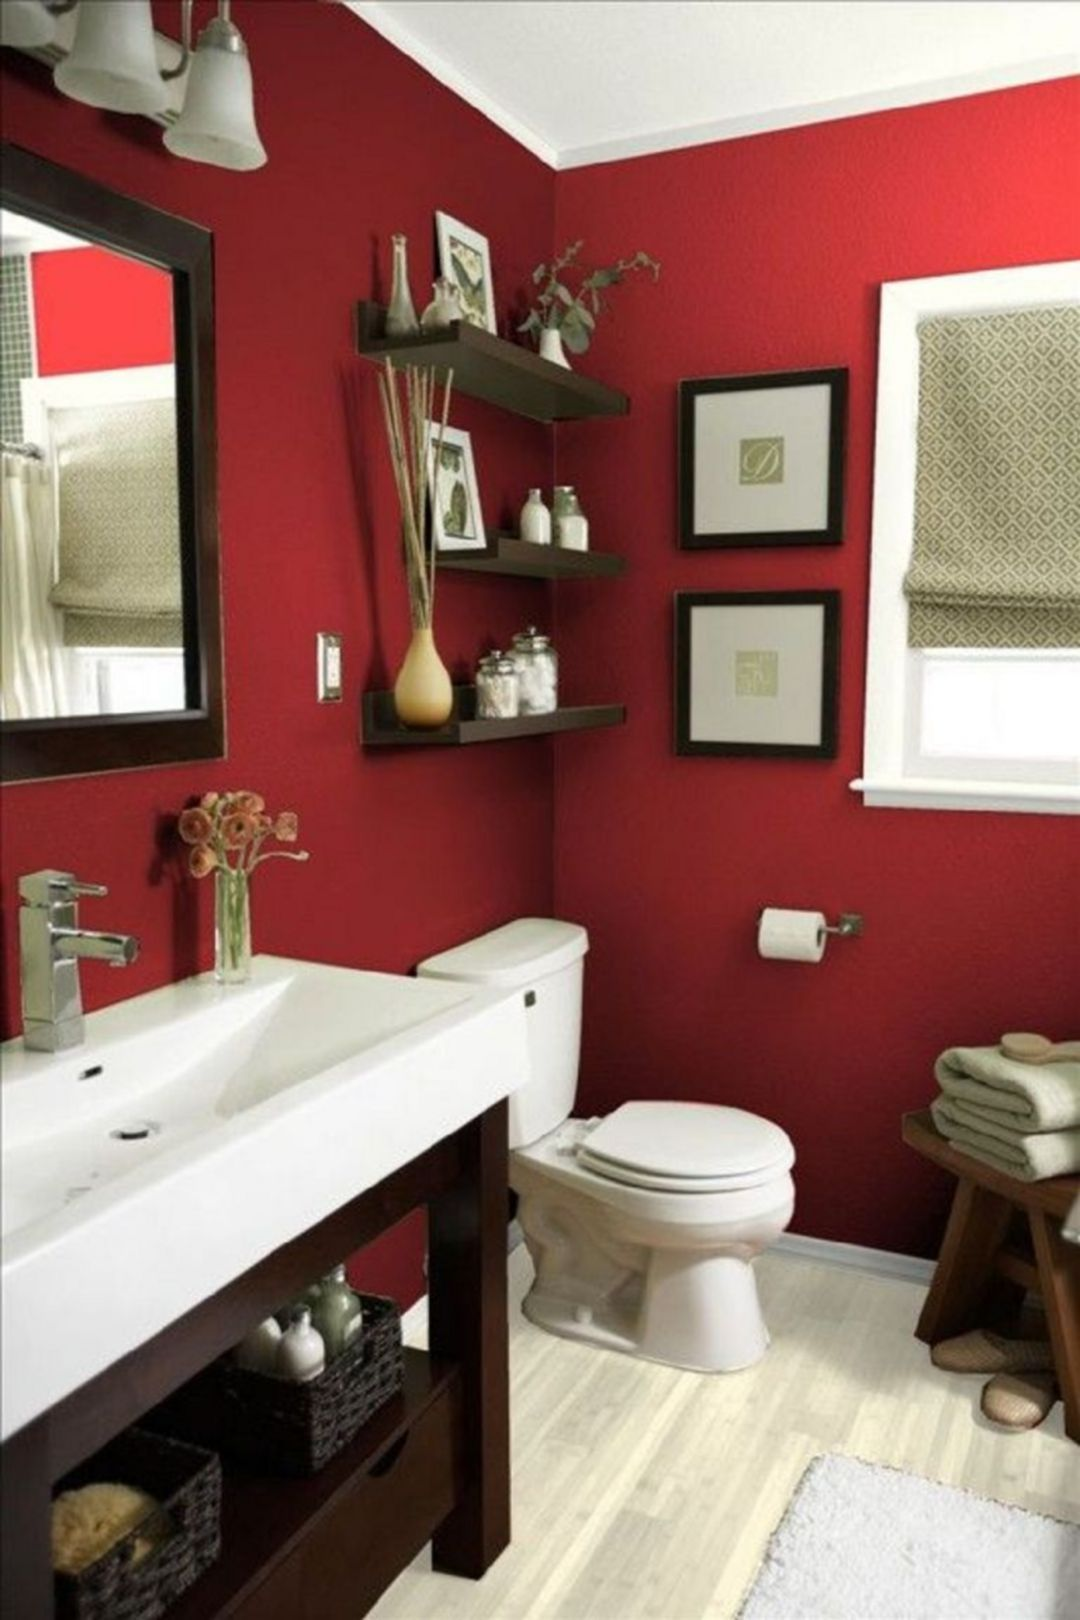 12 Wonderful Various Bright Colors For Your Bathroom Design Bathroom Bright Colors Design Wonderful In 2020 Bathroom Red Red Bathroom Decor Black Bathroom Decor